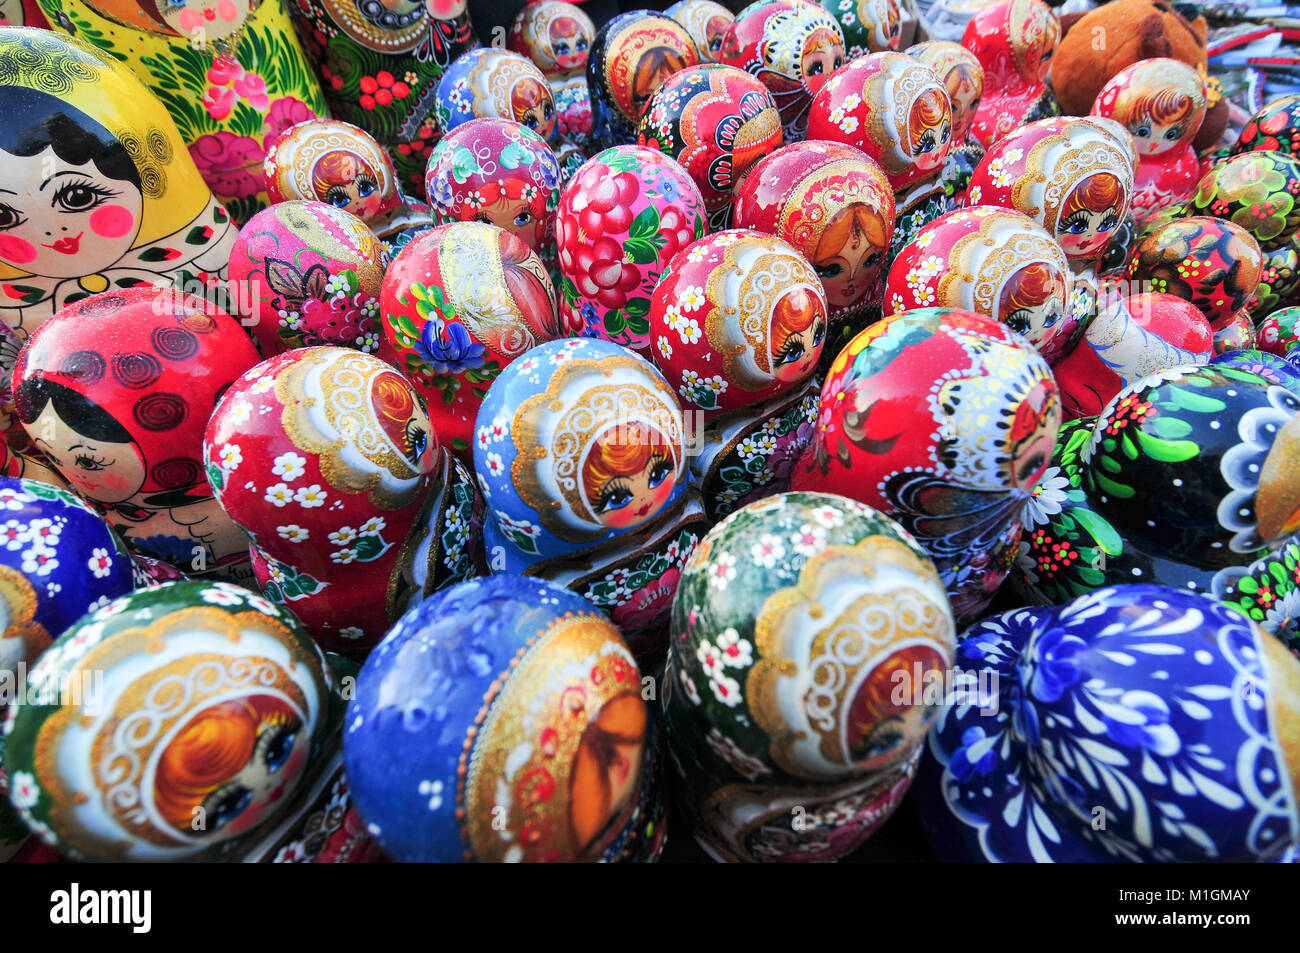 Russian nesting dolls for sale in Moscow, Russia. - Stock Image